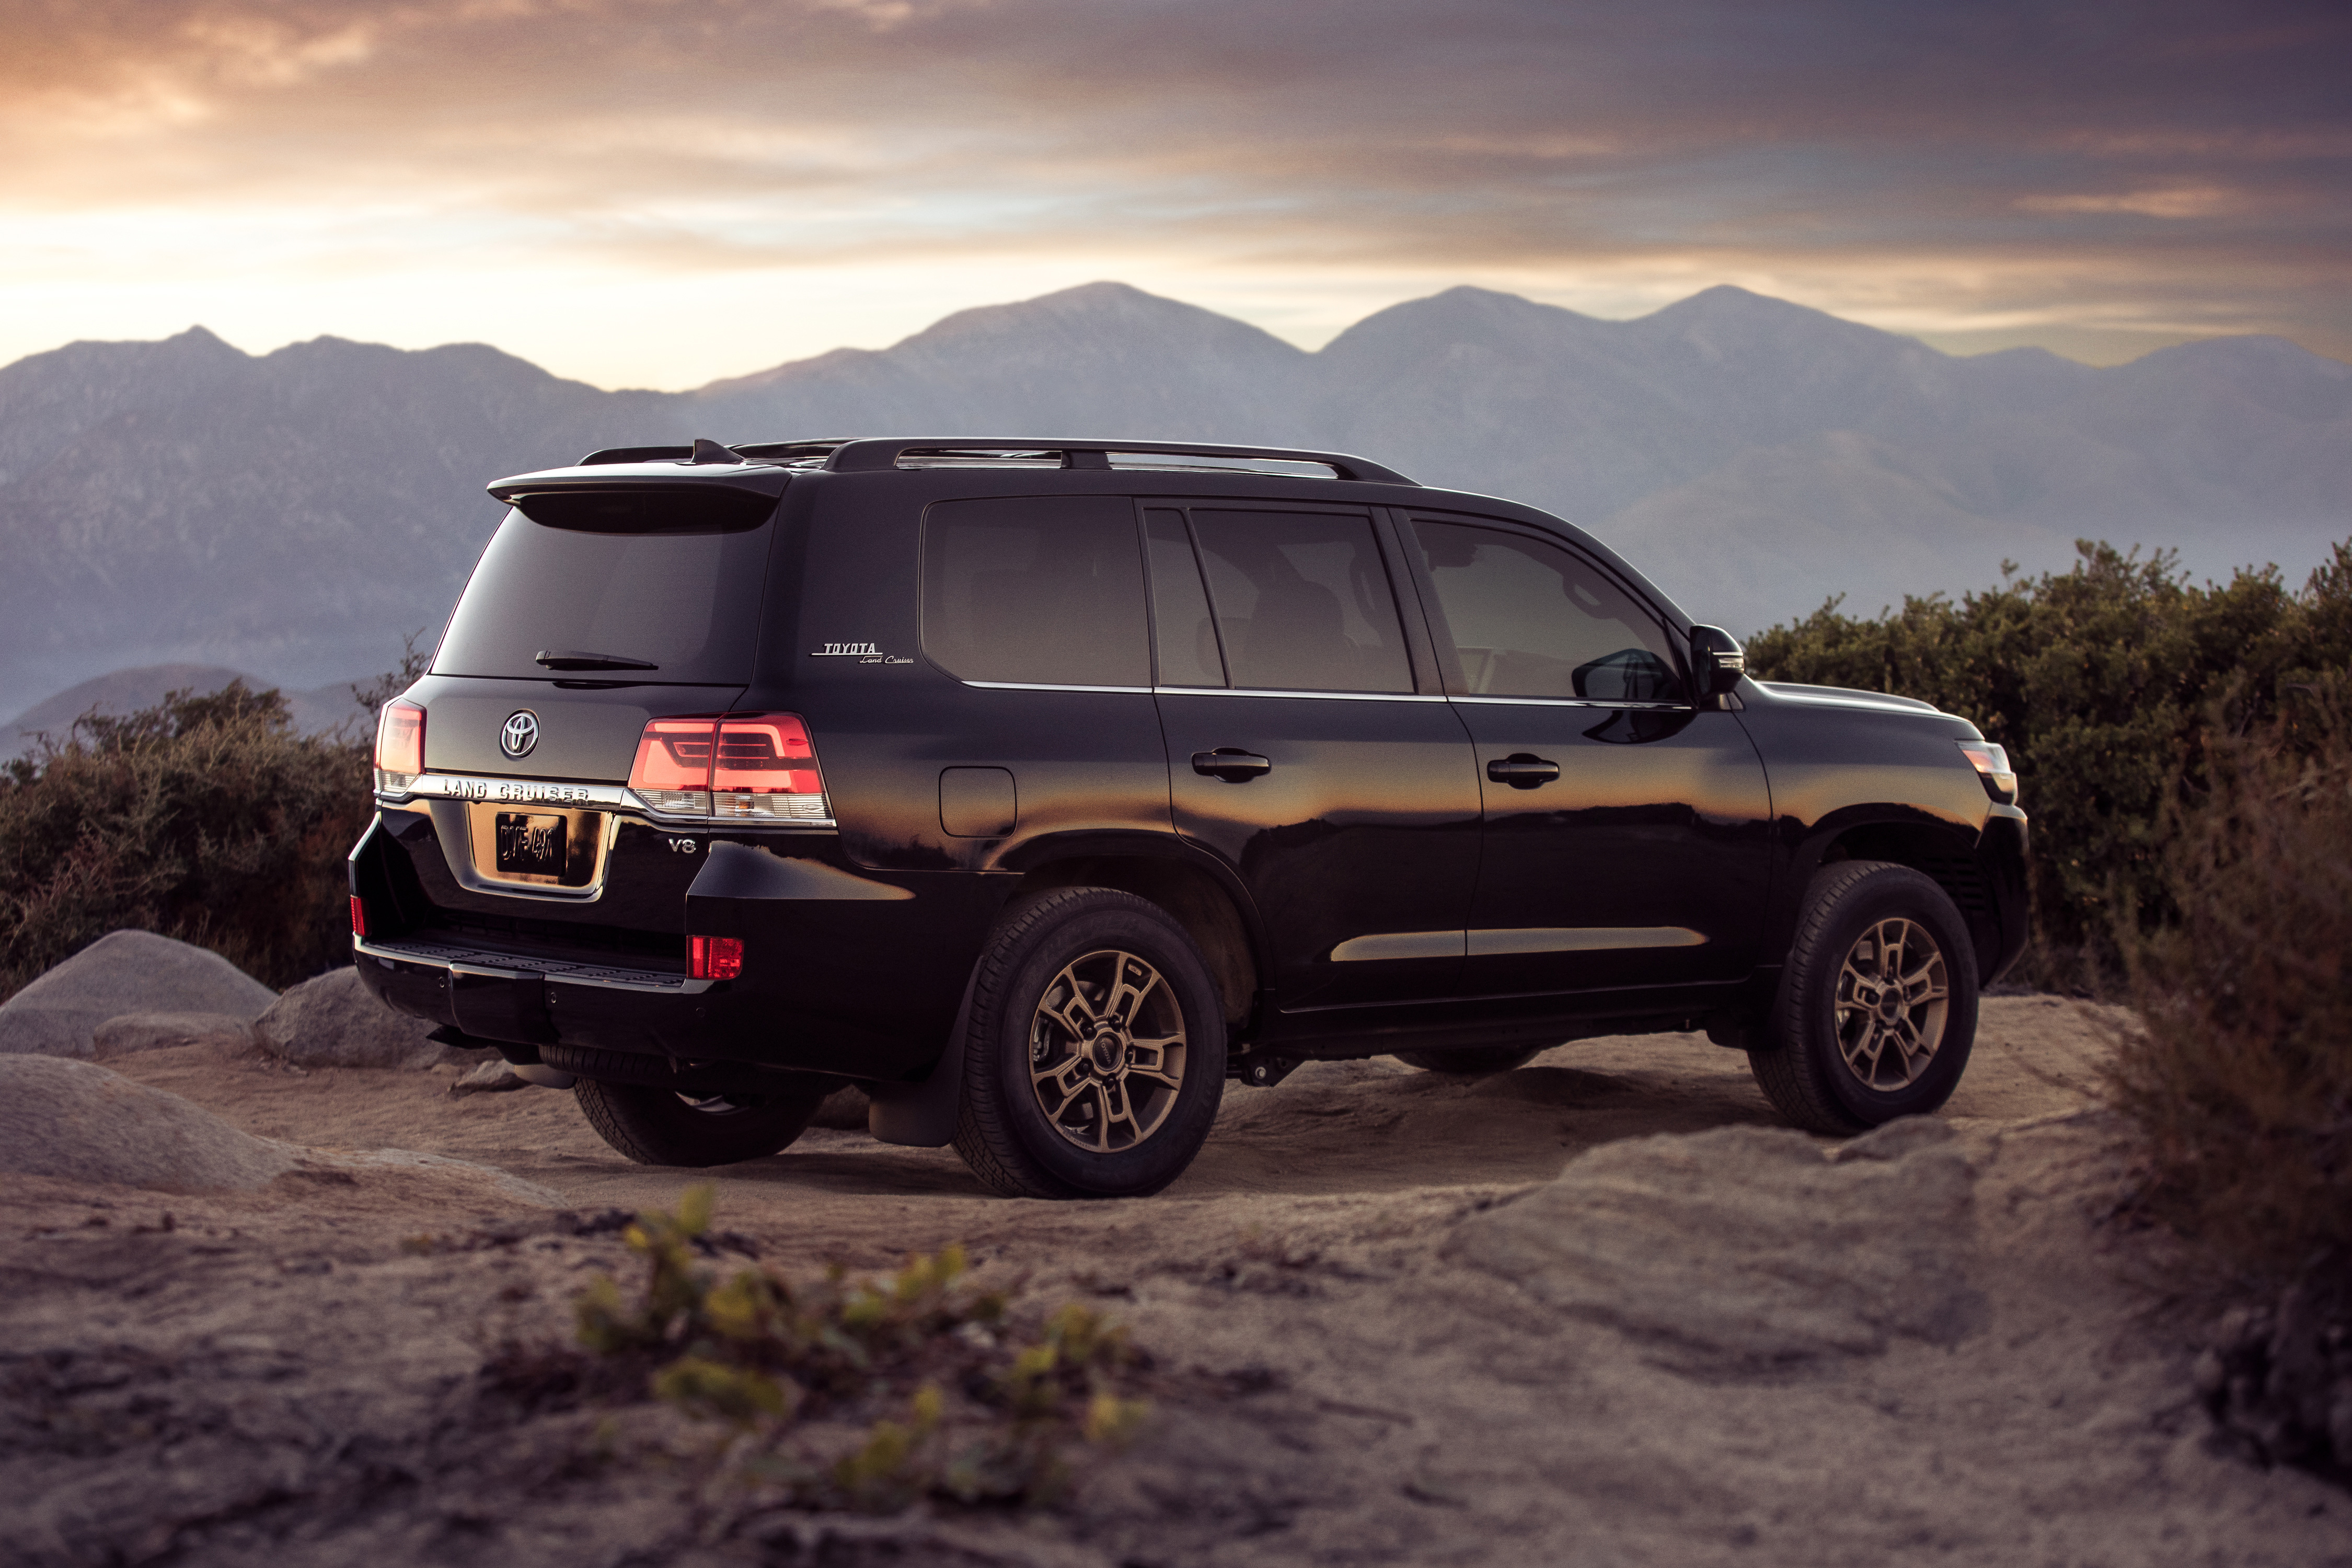 2019 Toyota Land Cruiser: News, Changes, Arrival >> 2019 Toyota Land Cruiser: News, Changes, Arrival | 2020 ...